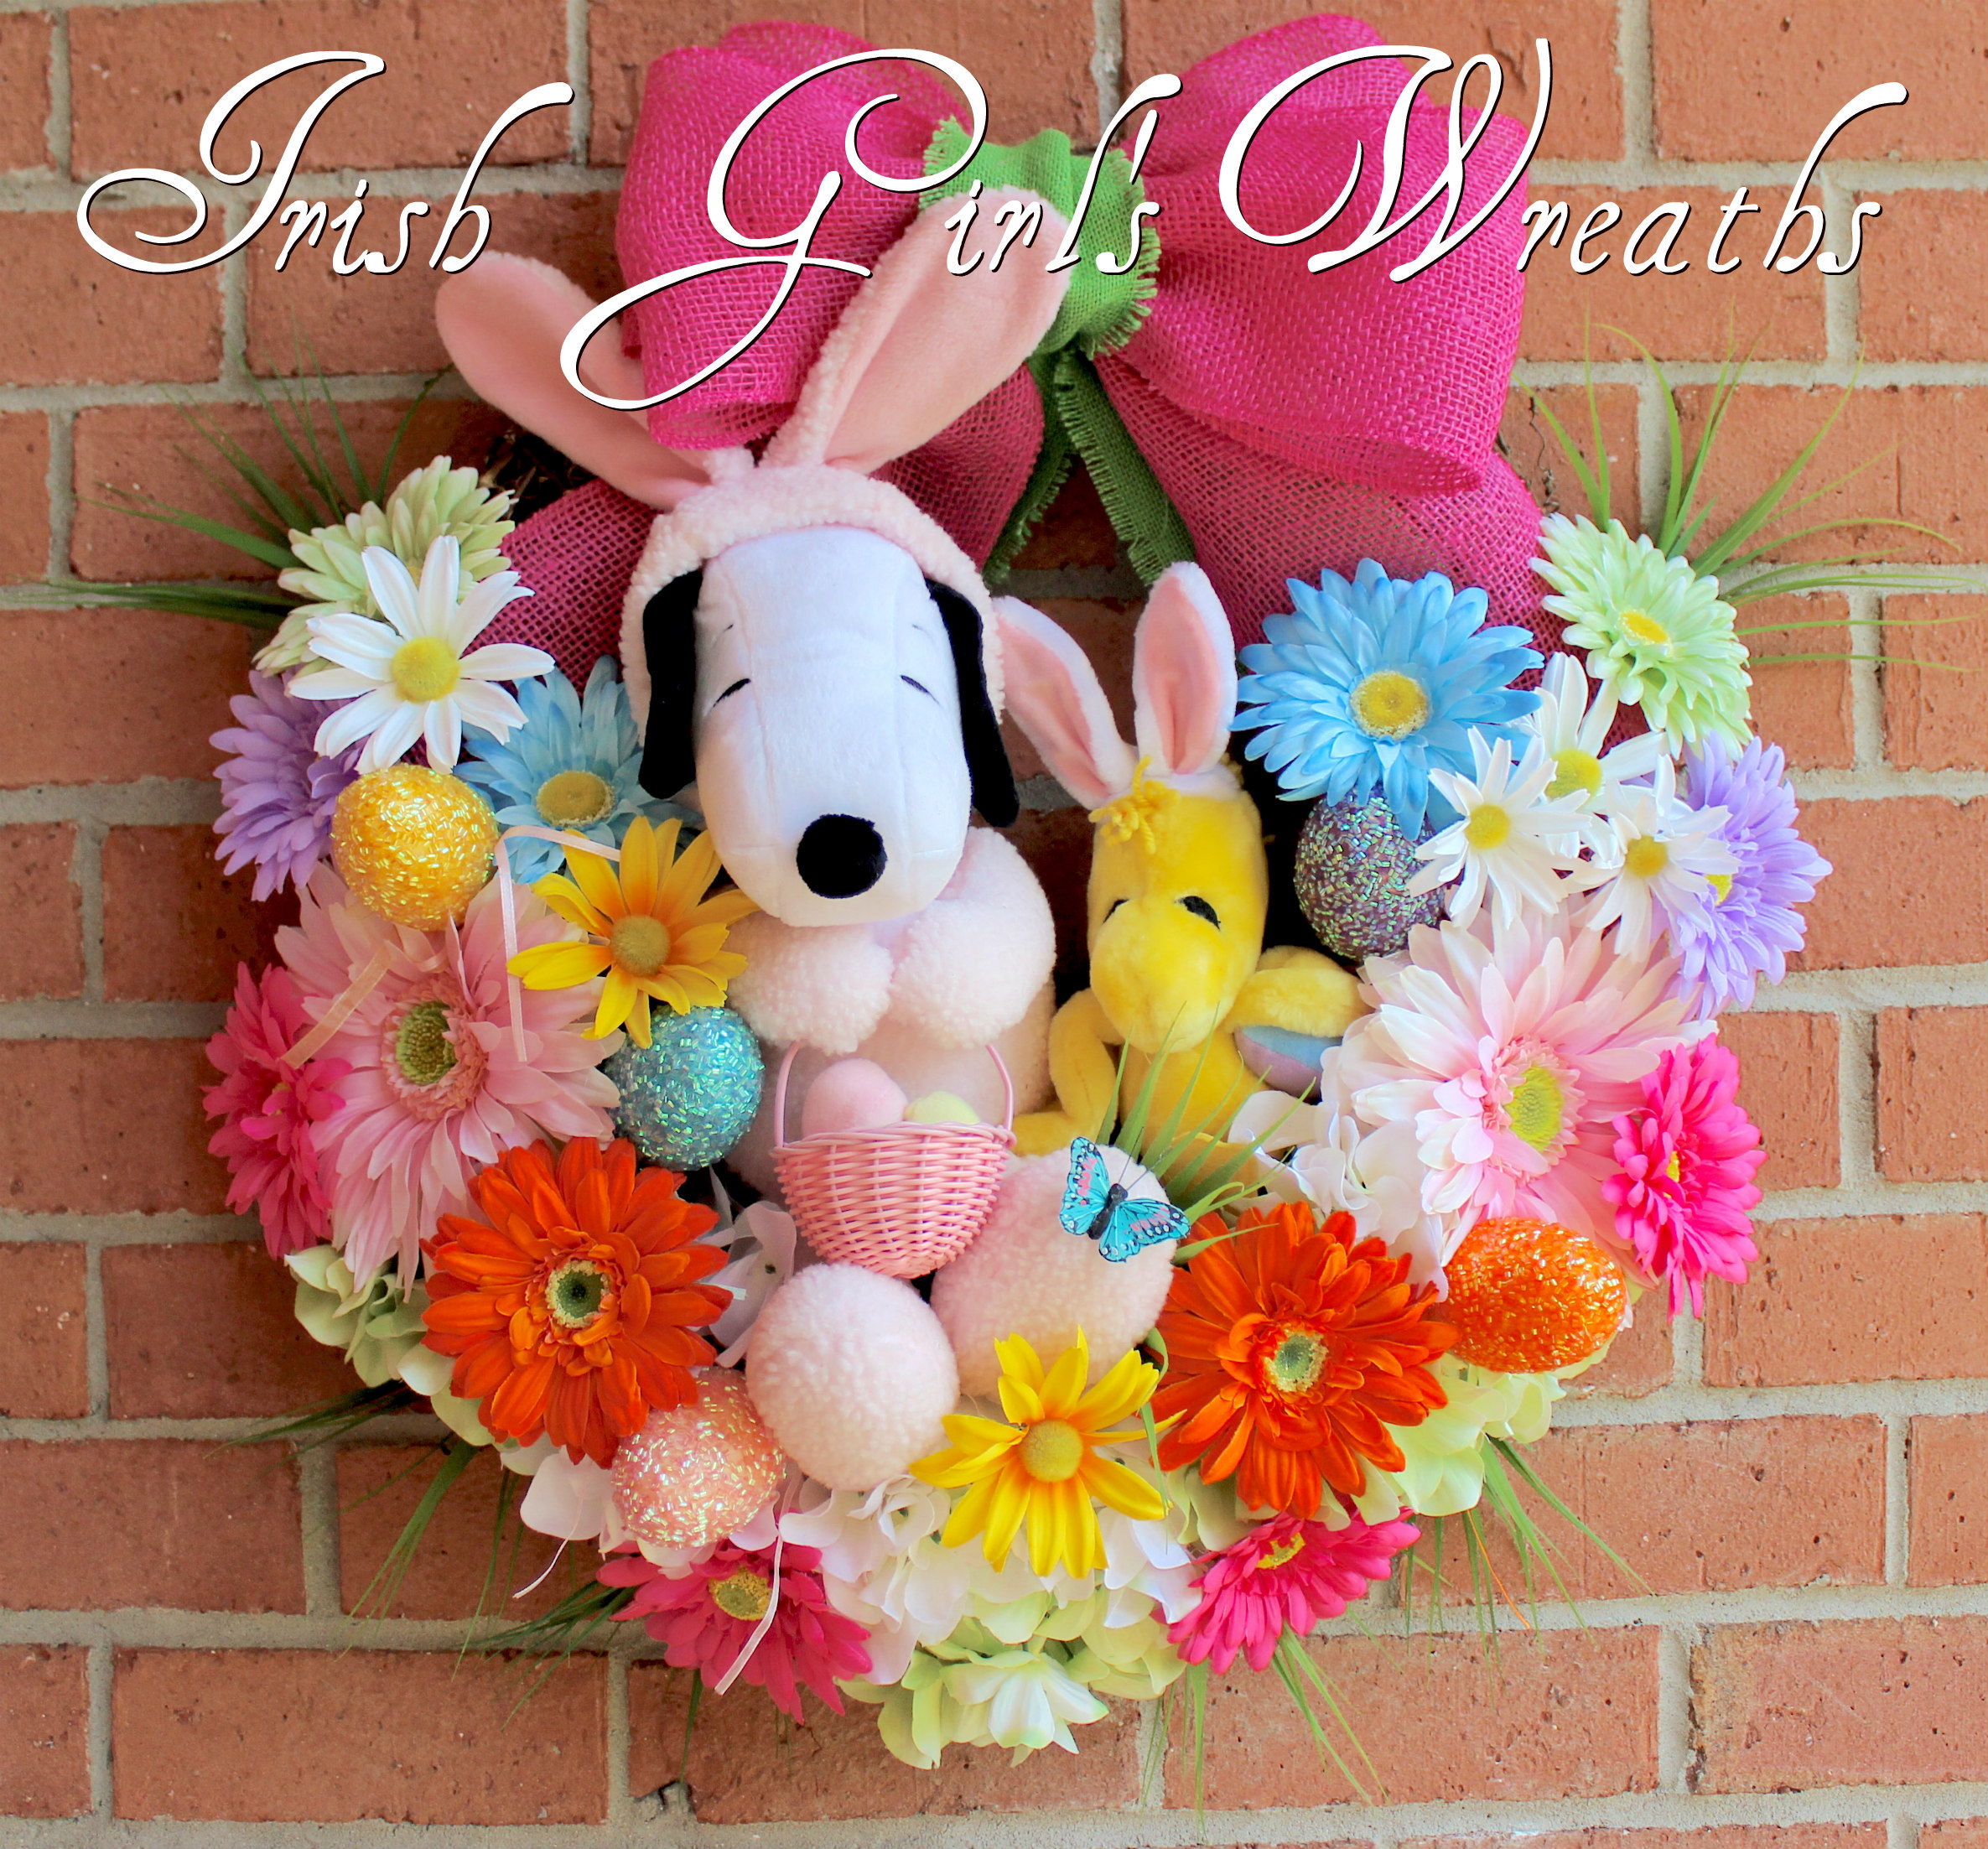 Easter Beagle Snoopy and Woodstock Easter Wreath, Custom for Jessica